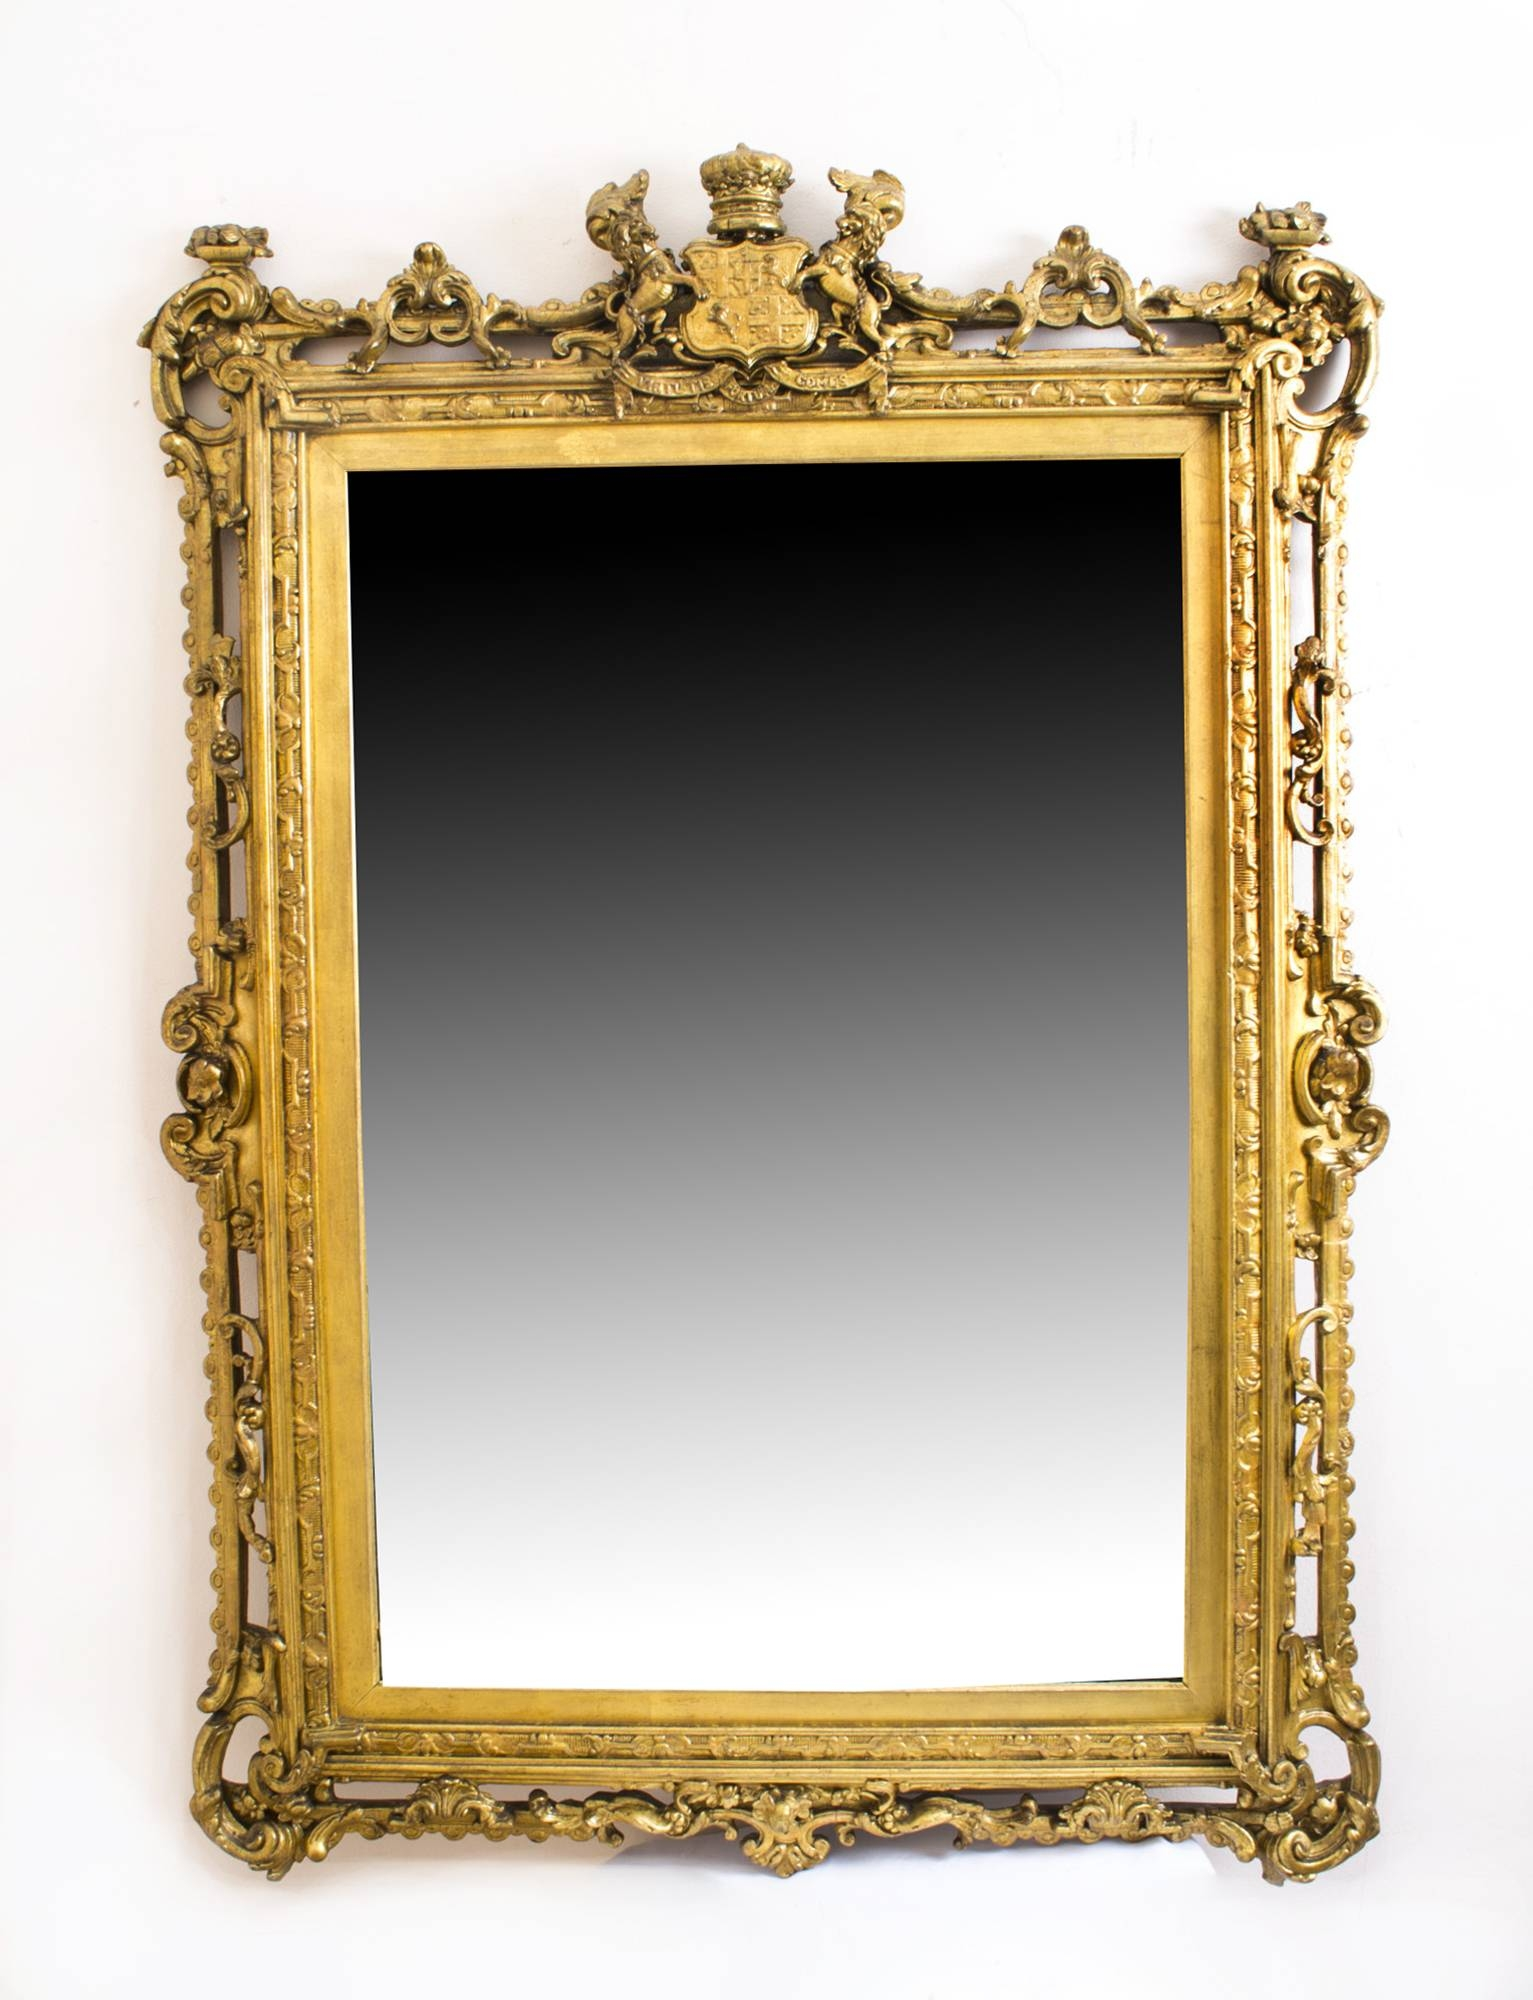 Antique Gilded Mirror With Prince Albert Crest C 1850 | Vinterior With Regard To Antique Gilded Mirrors (View 3 of 25)